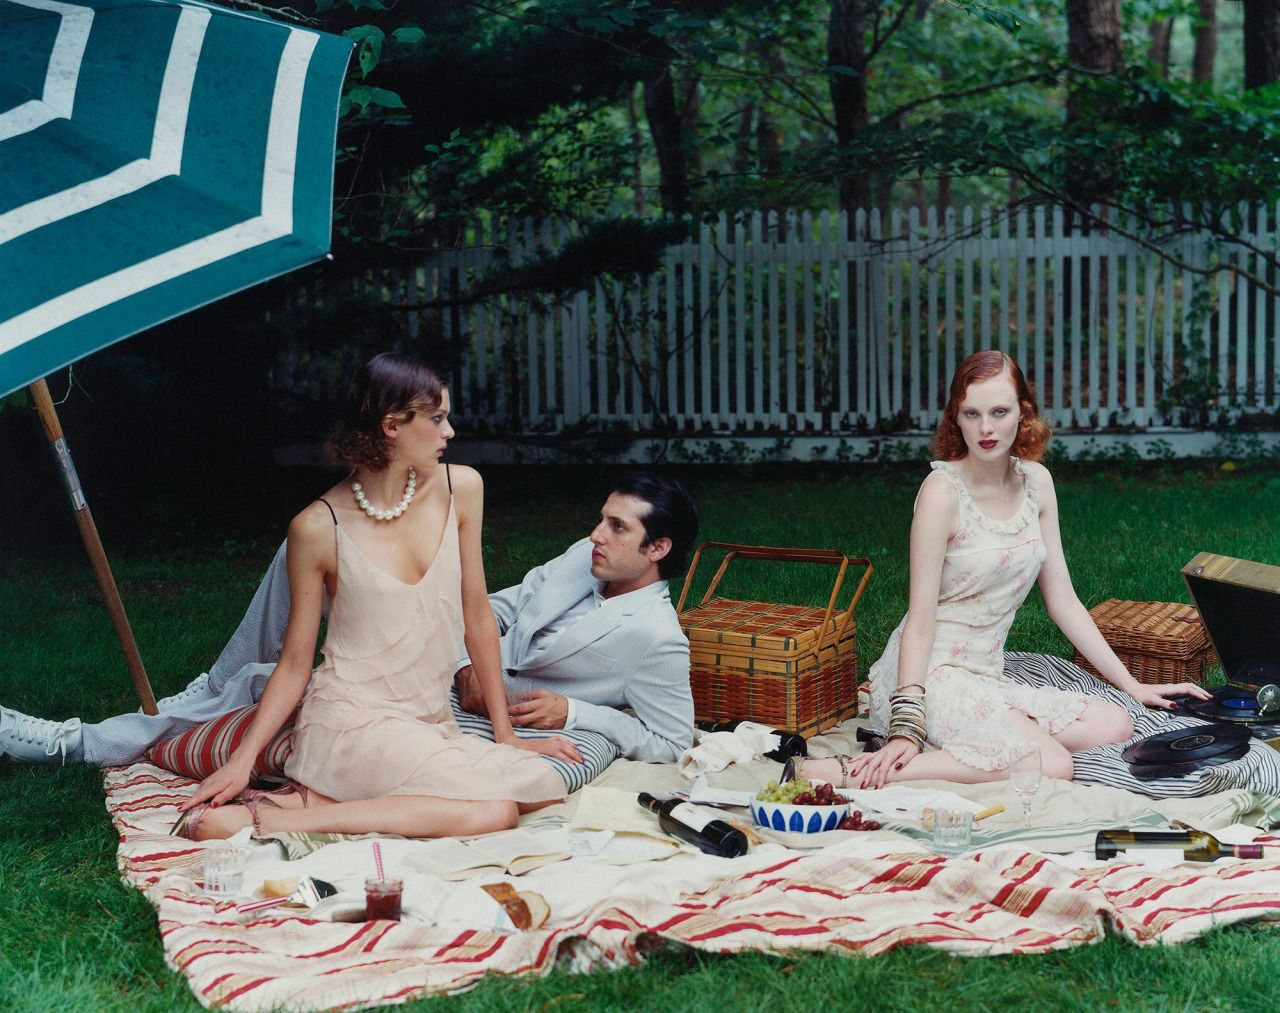 9 stylish pieces to grab and go for the ultimate picnic Photographed by Arthur Elgort, Vogue, November 2003